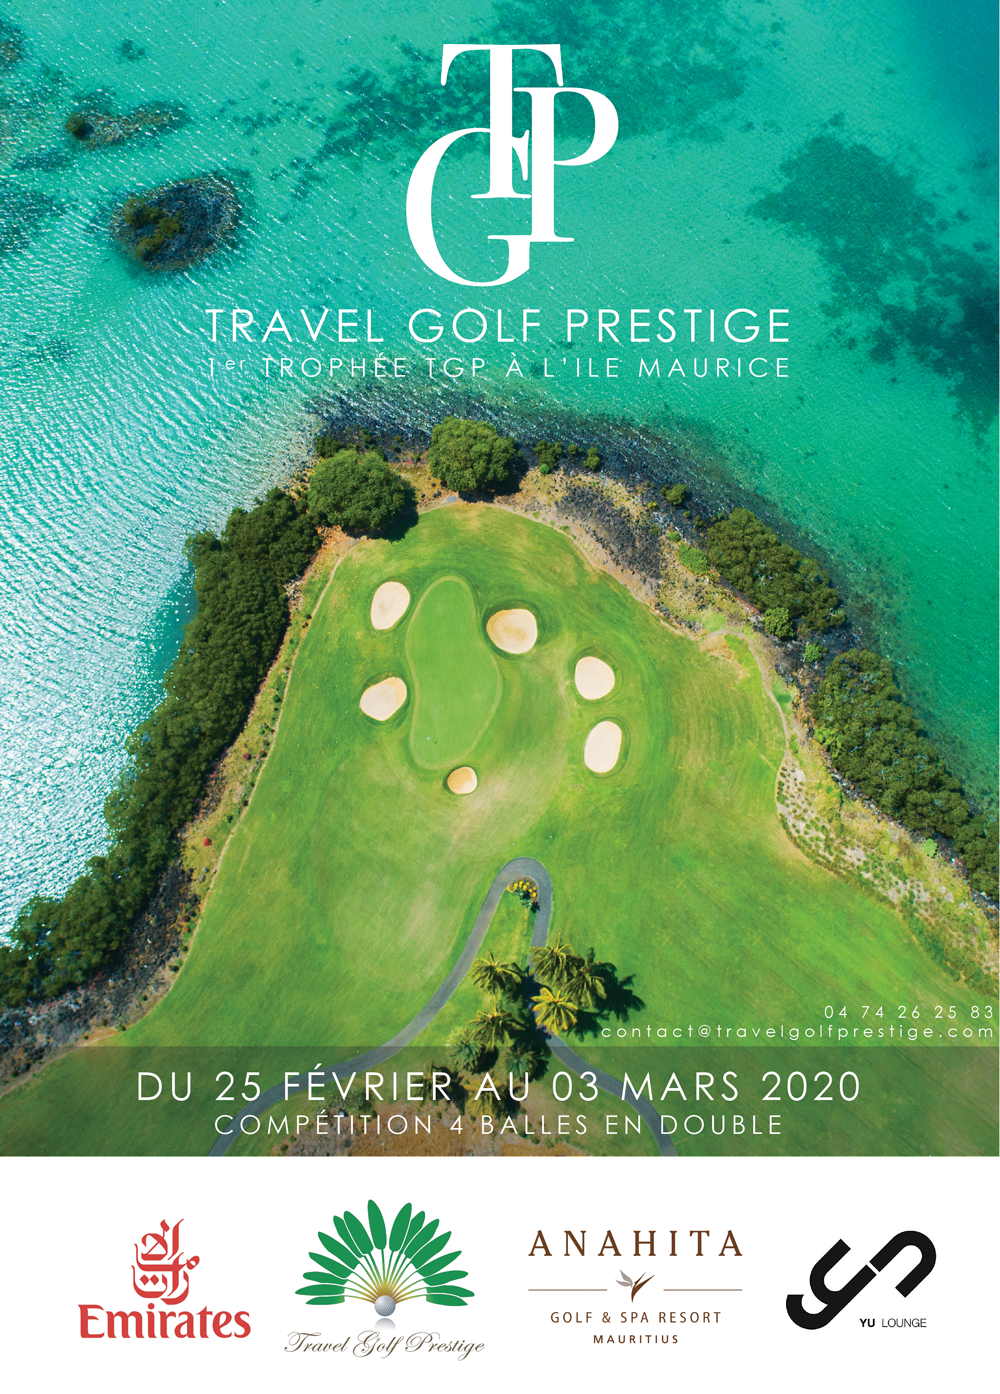 Travel Golf Prestige